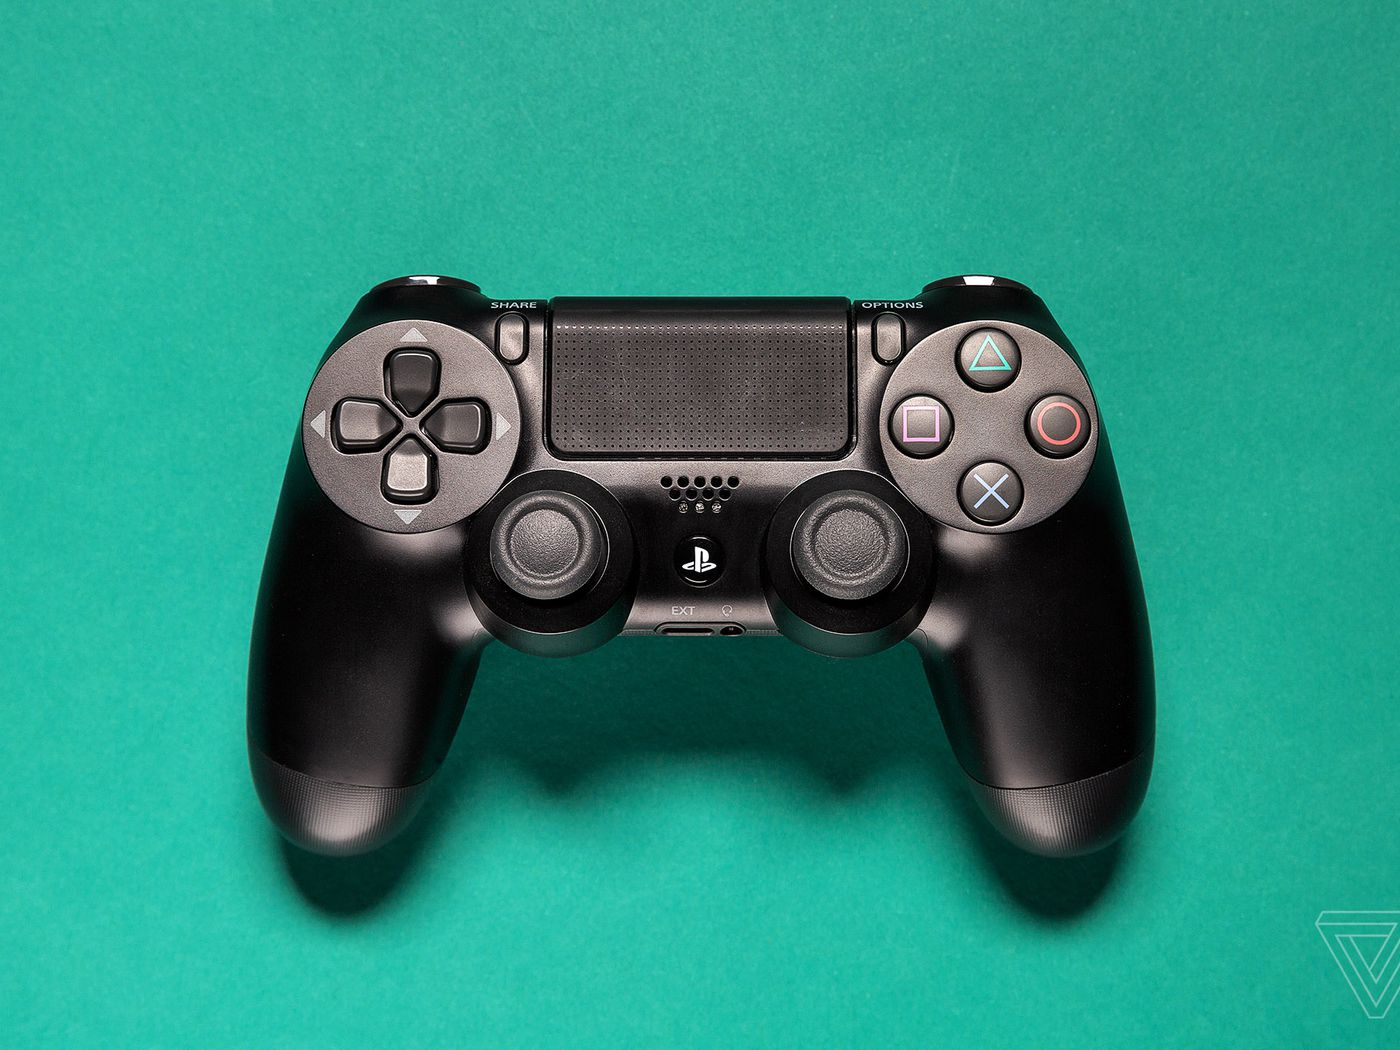 How To Pair Ps4 Or Xbox Controllers With Iphone Ipad Apple Tv Or Android The Verge